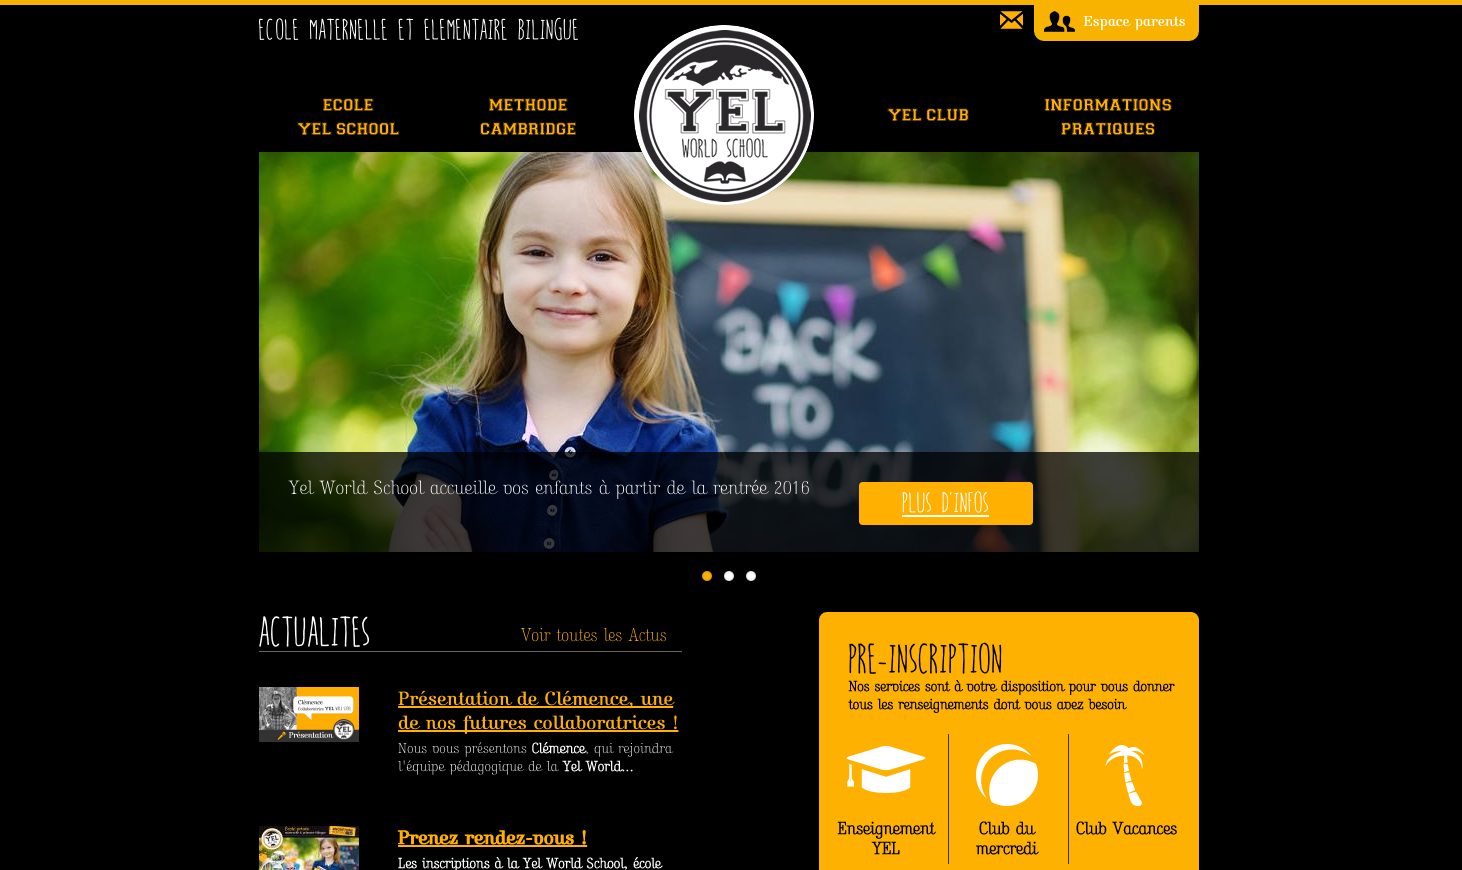 yel world school